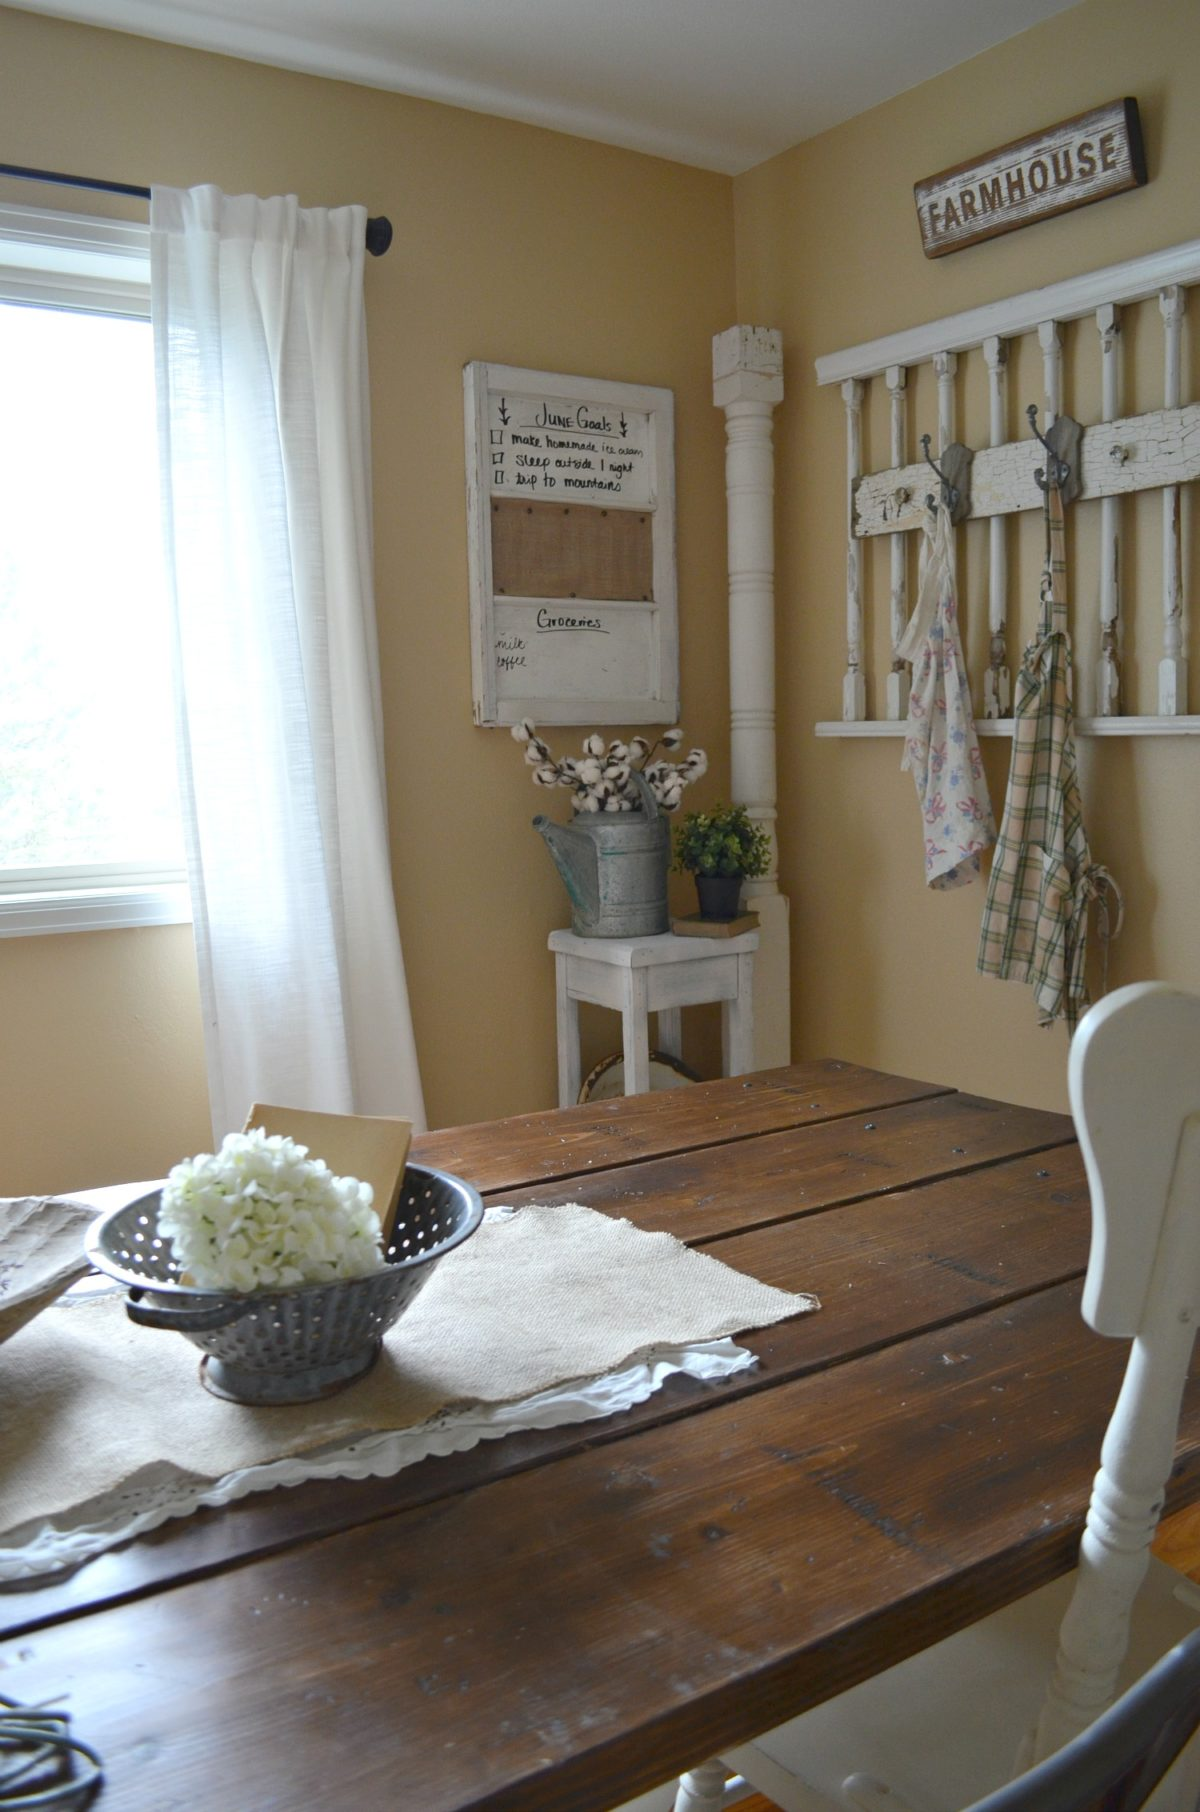 Exceptional Monthly Goals On Old Window In Dining Room